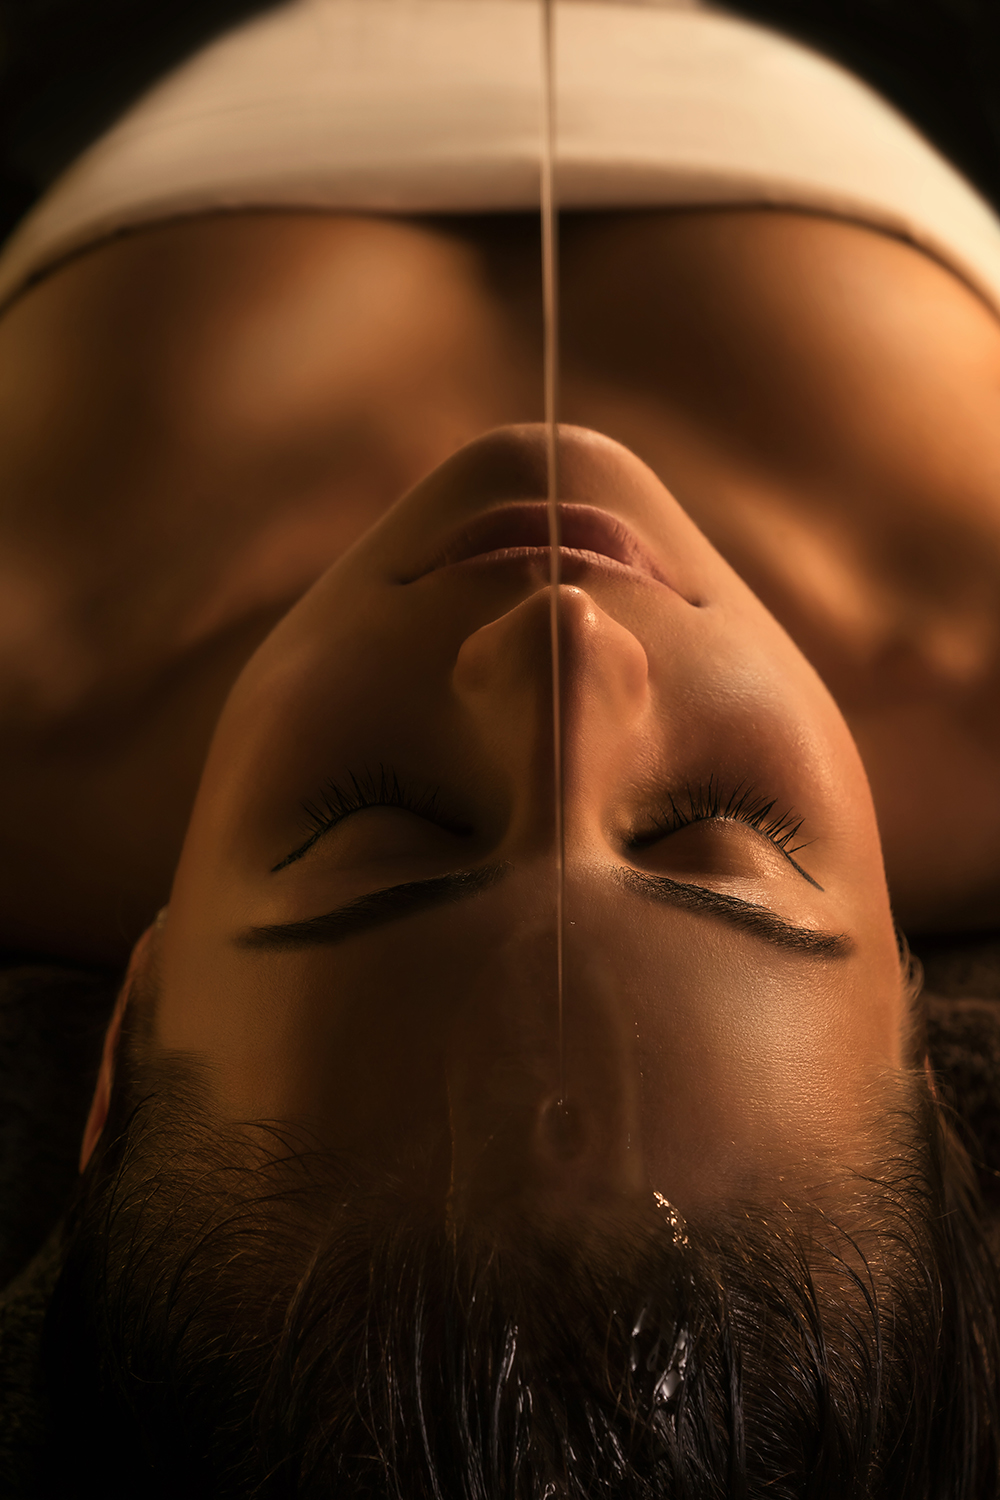 Shirodhara is a deeply relaxing body treatment from the ancient Ayurvedic holistic healing practice.